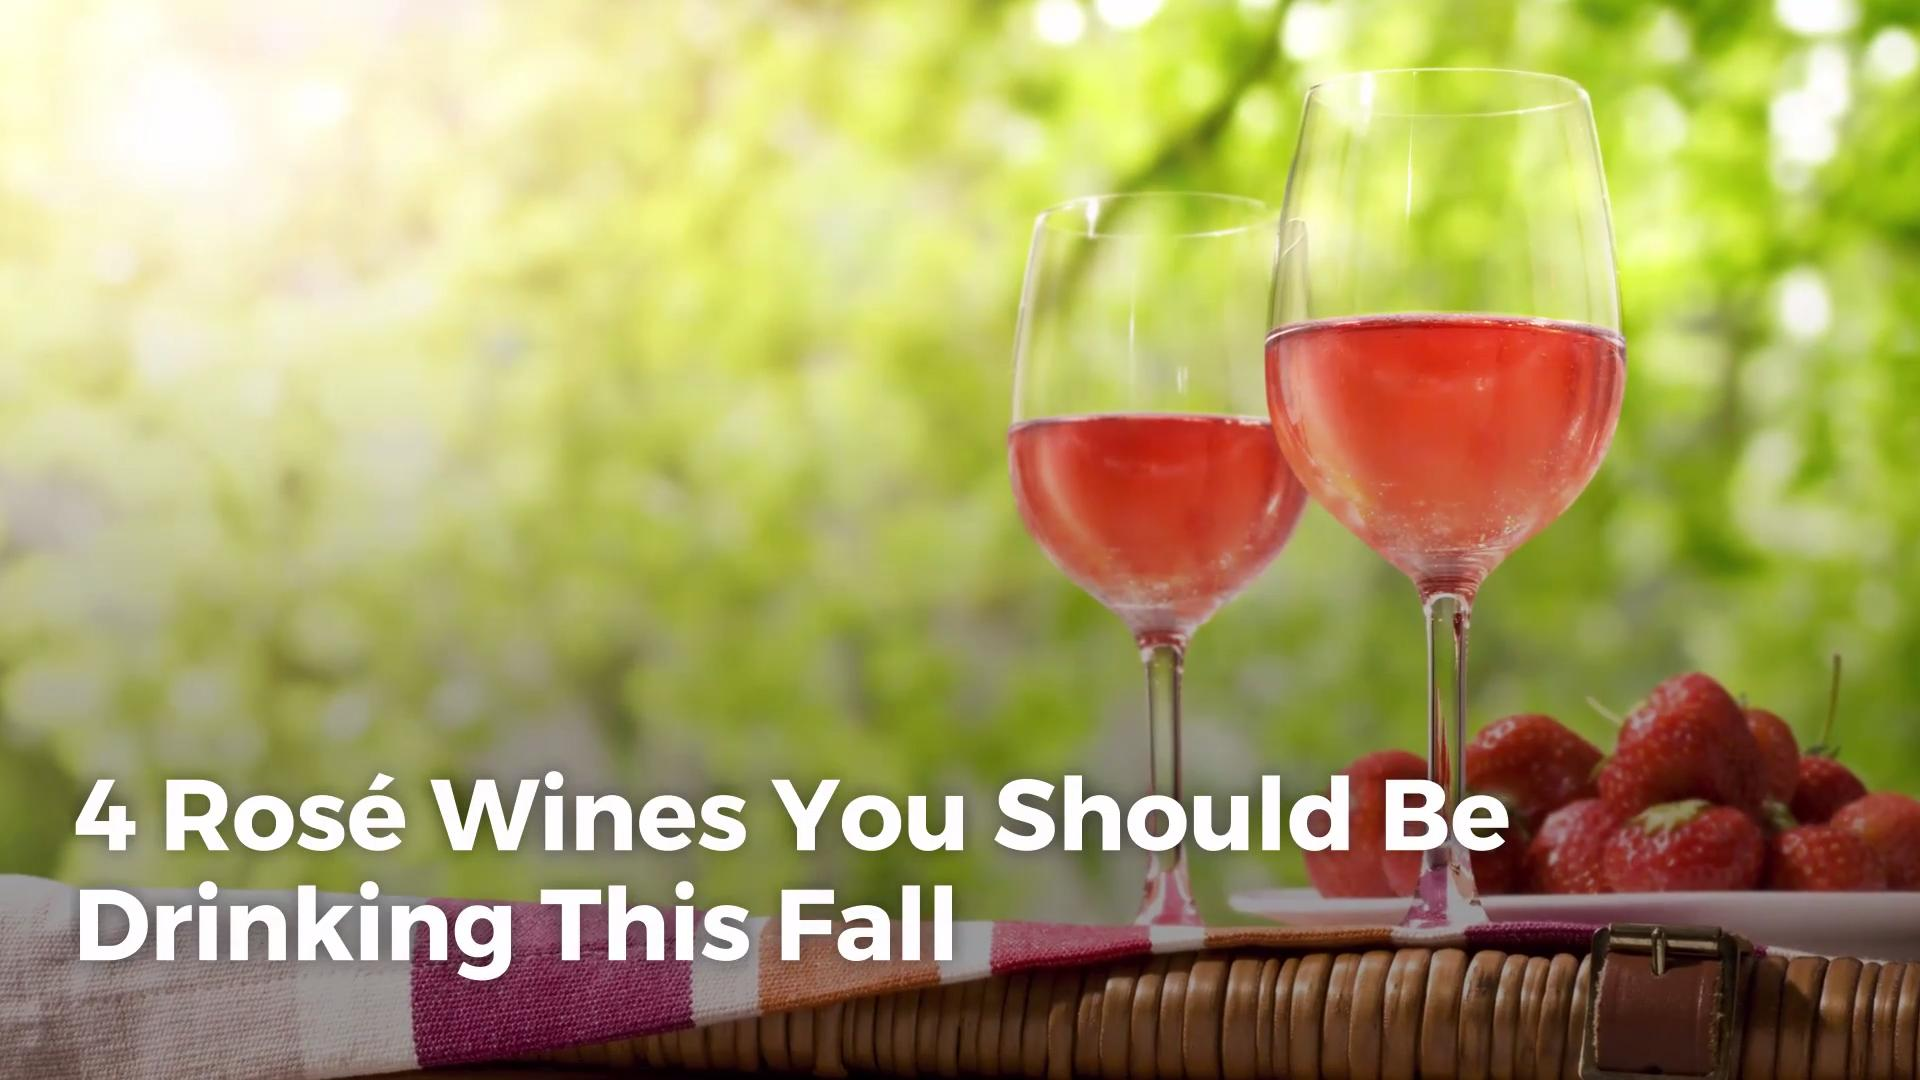 4 Rosé Wines You Should Be Drinking This Fall